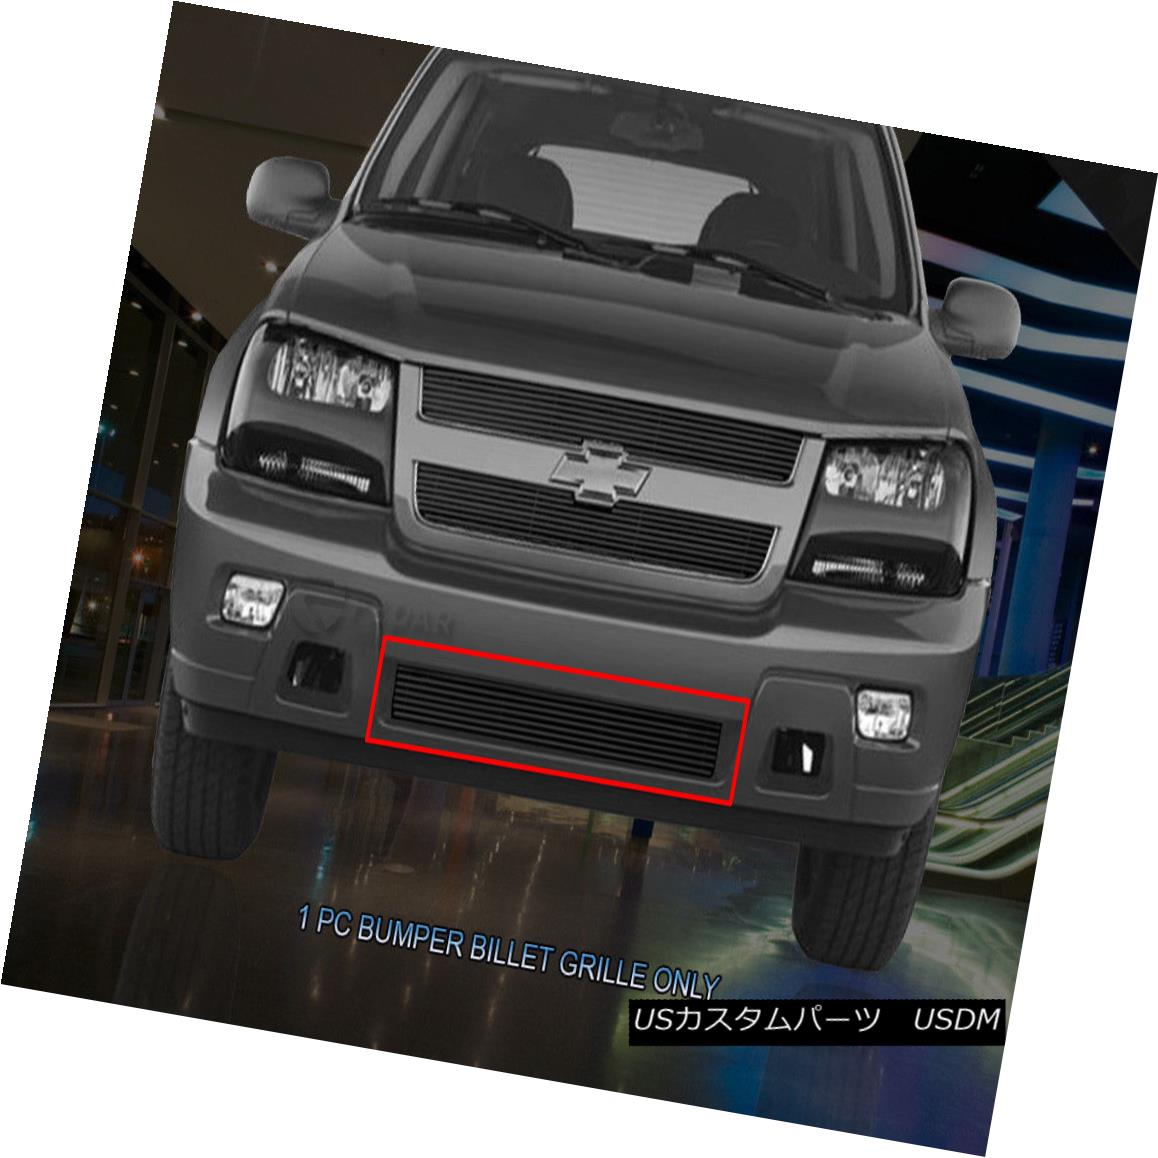 グリル For 06-09 Chevy Trailblazer LT Black Billet Grille Grill Bumper Insert Fedar 06-09 Chevy Trailblazer LT Black BilletグリルグリルバンパーインサートFedar